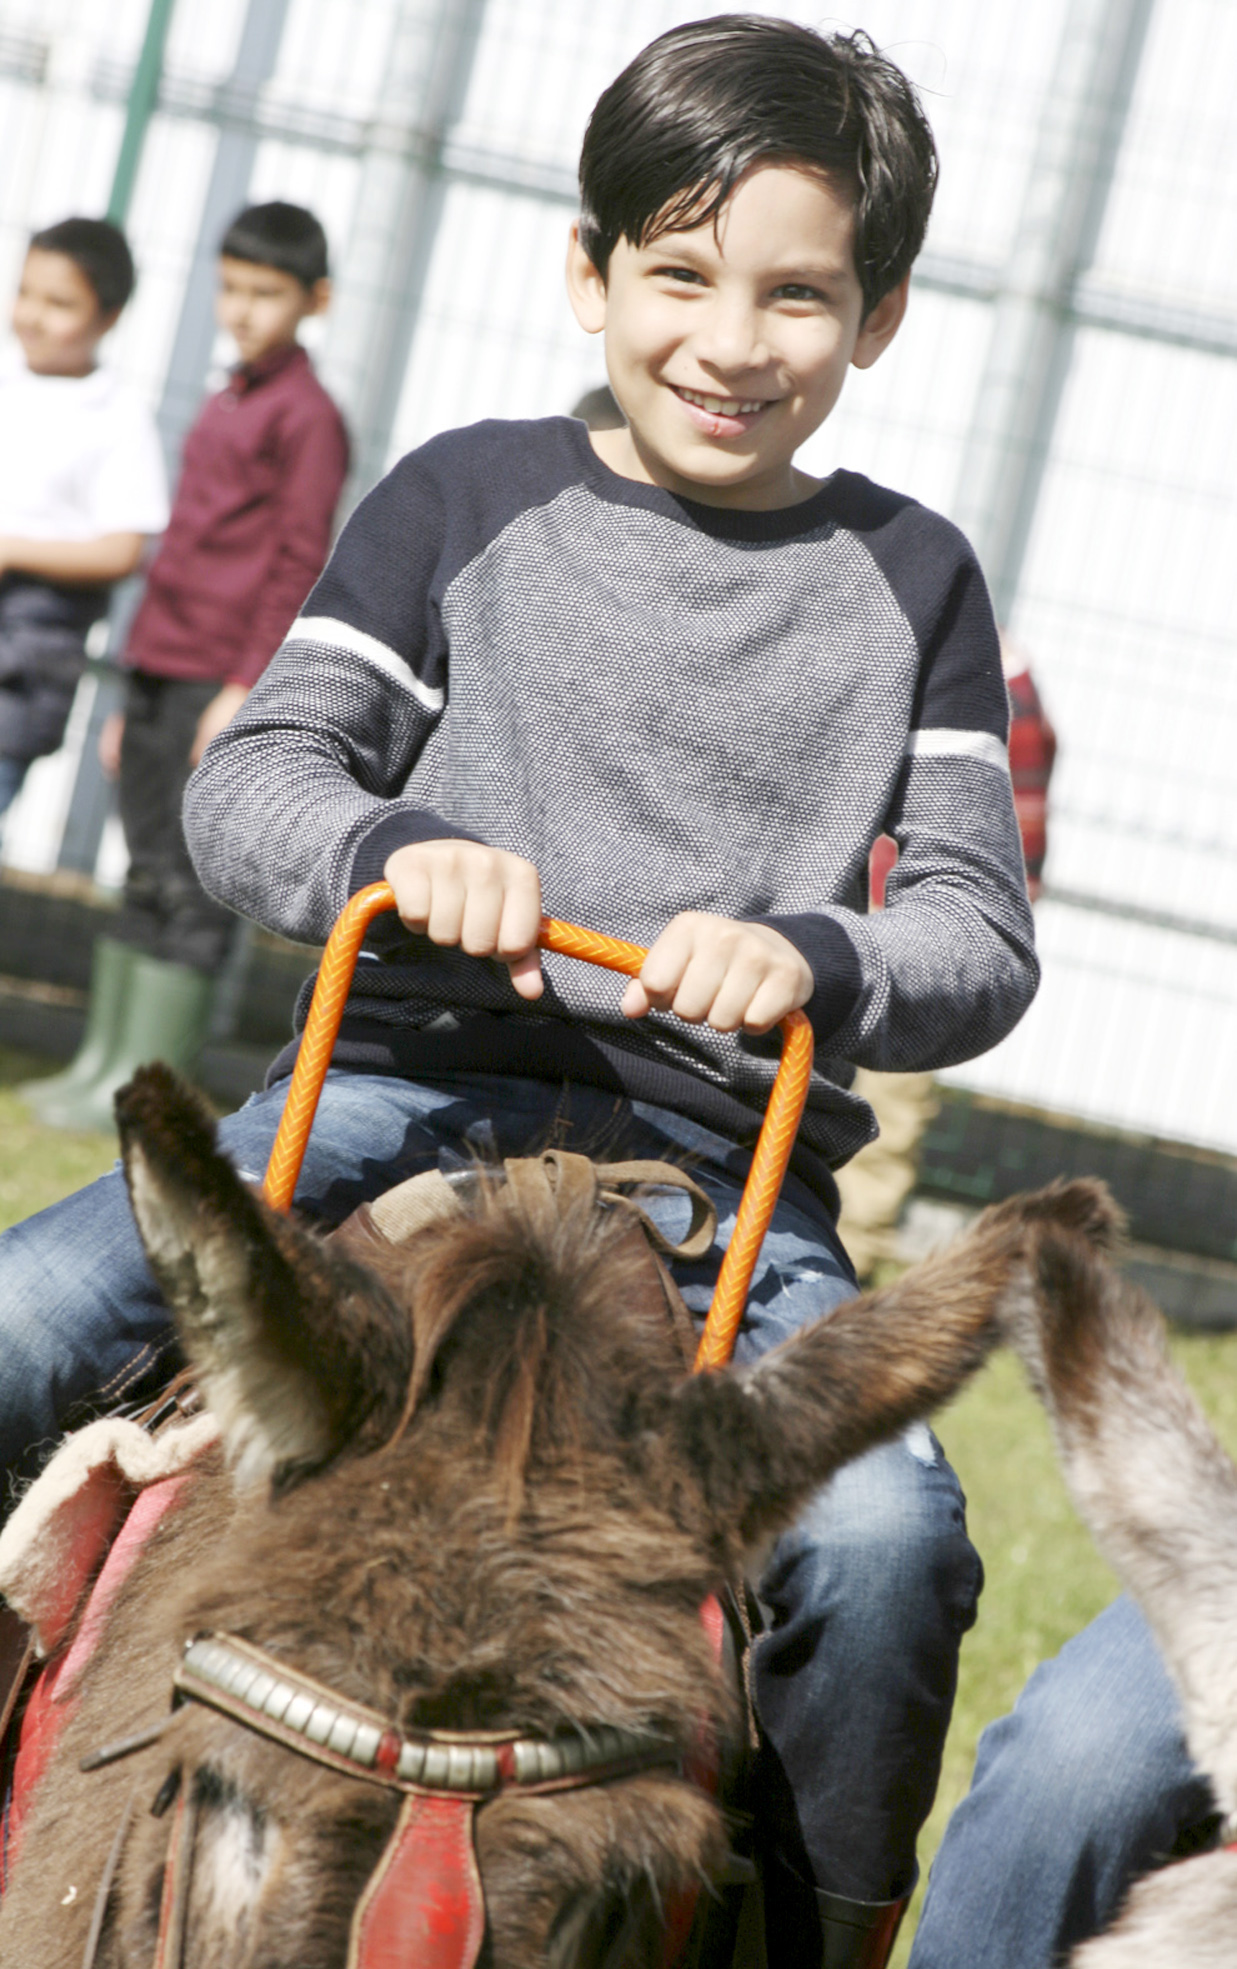 Donkey rides are among the attractions at the fun day.